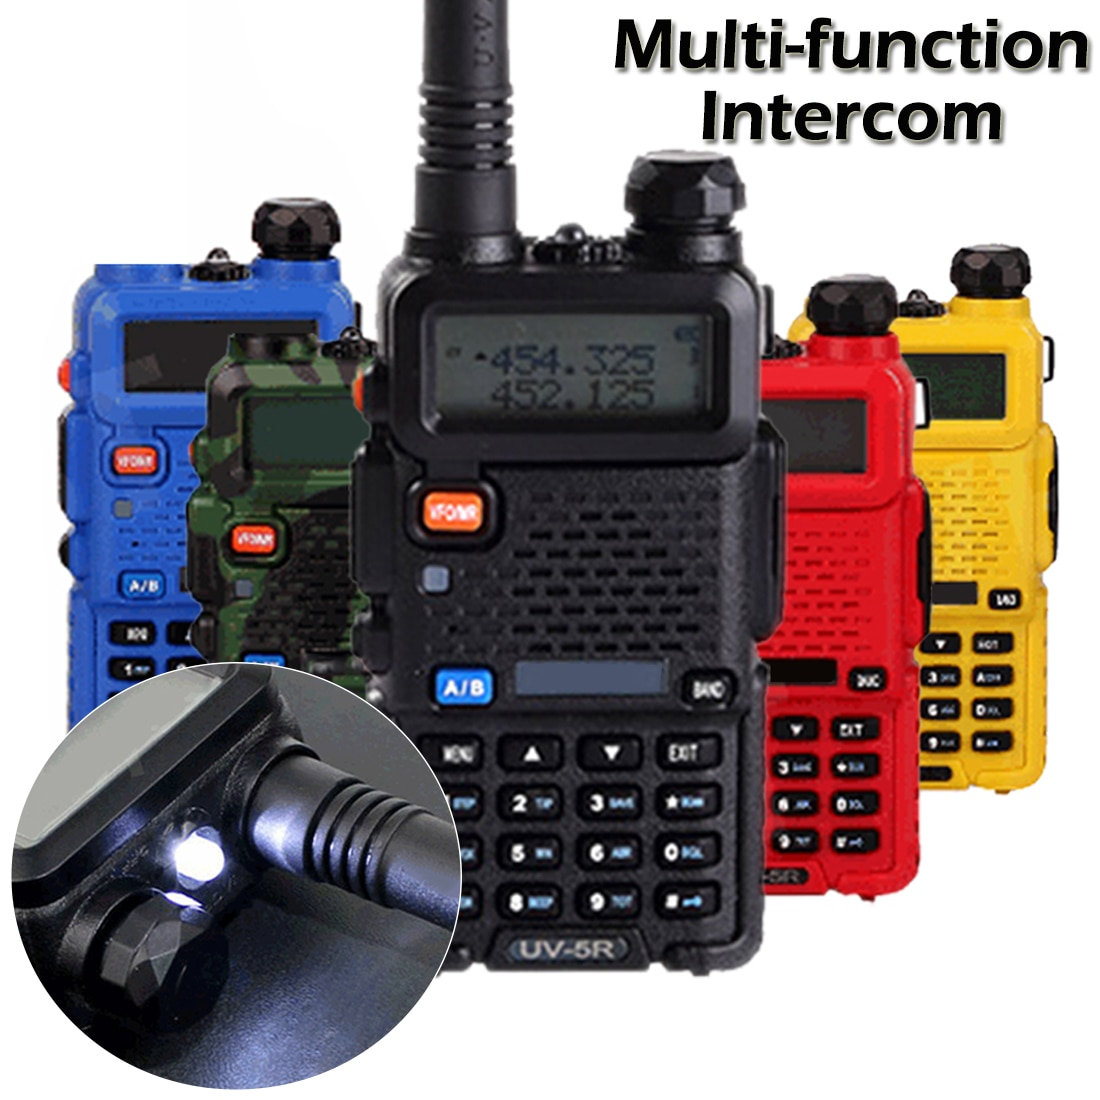 Walkie-talkie ham radio communication high-frequency transceiver radio scanner two-way radio walkie-talkie